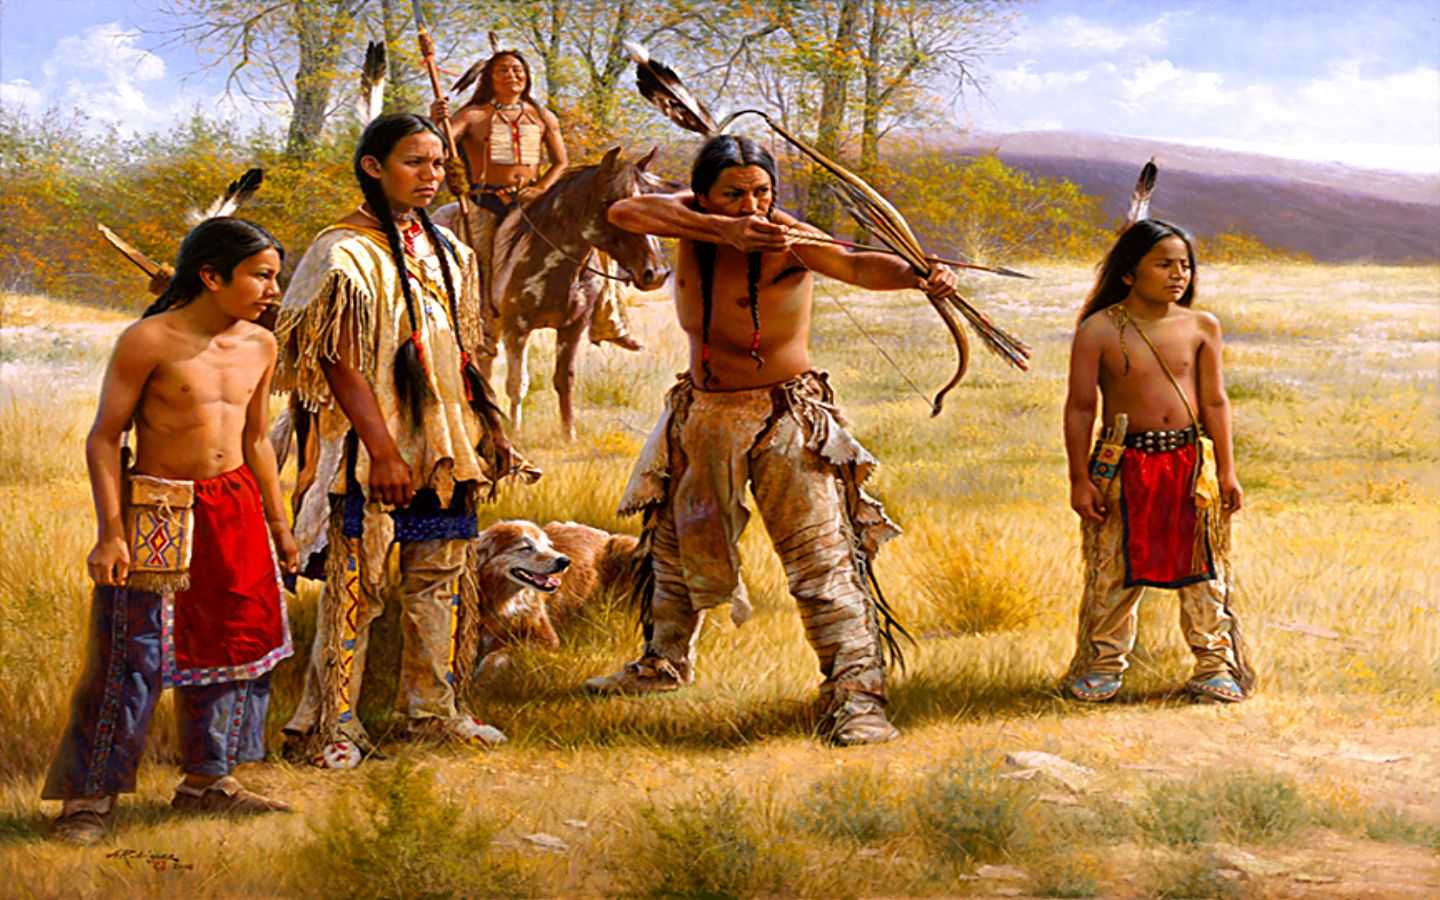 Native American Abstract Backgrounds wallpaper wallpaper hd 1440x900